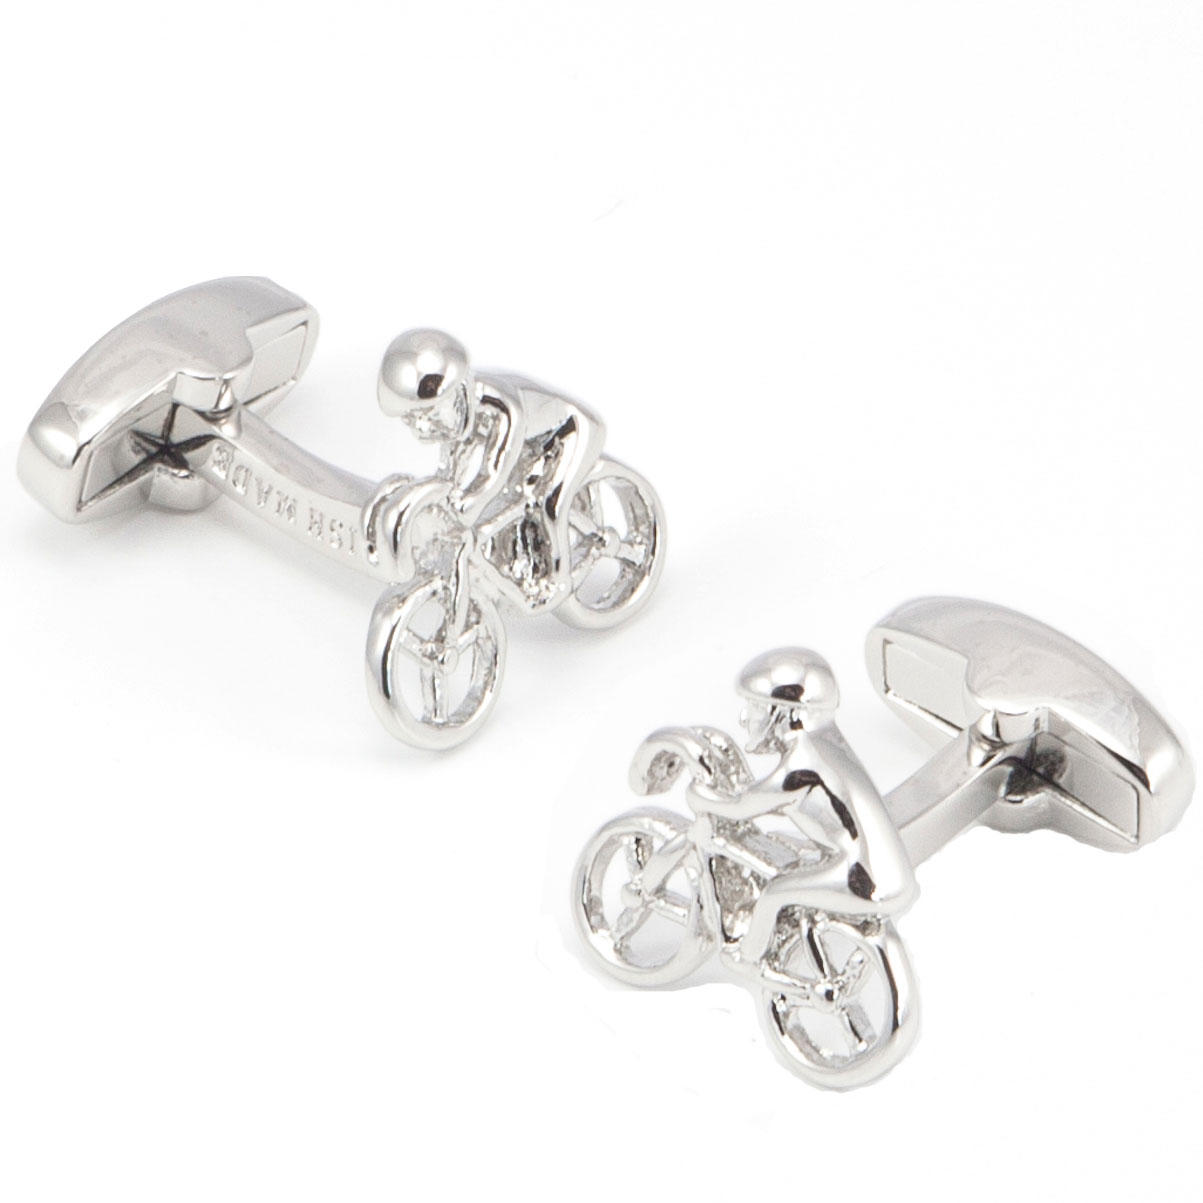 Cycling Cufflinks from Cuffs & Co